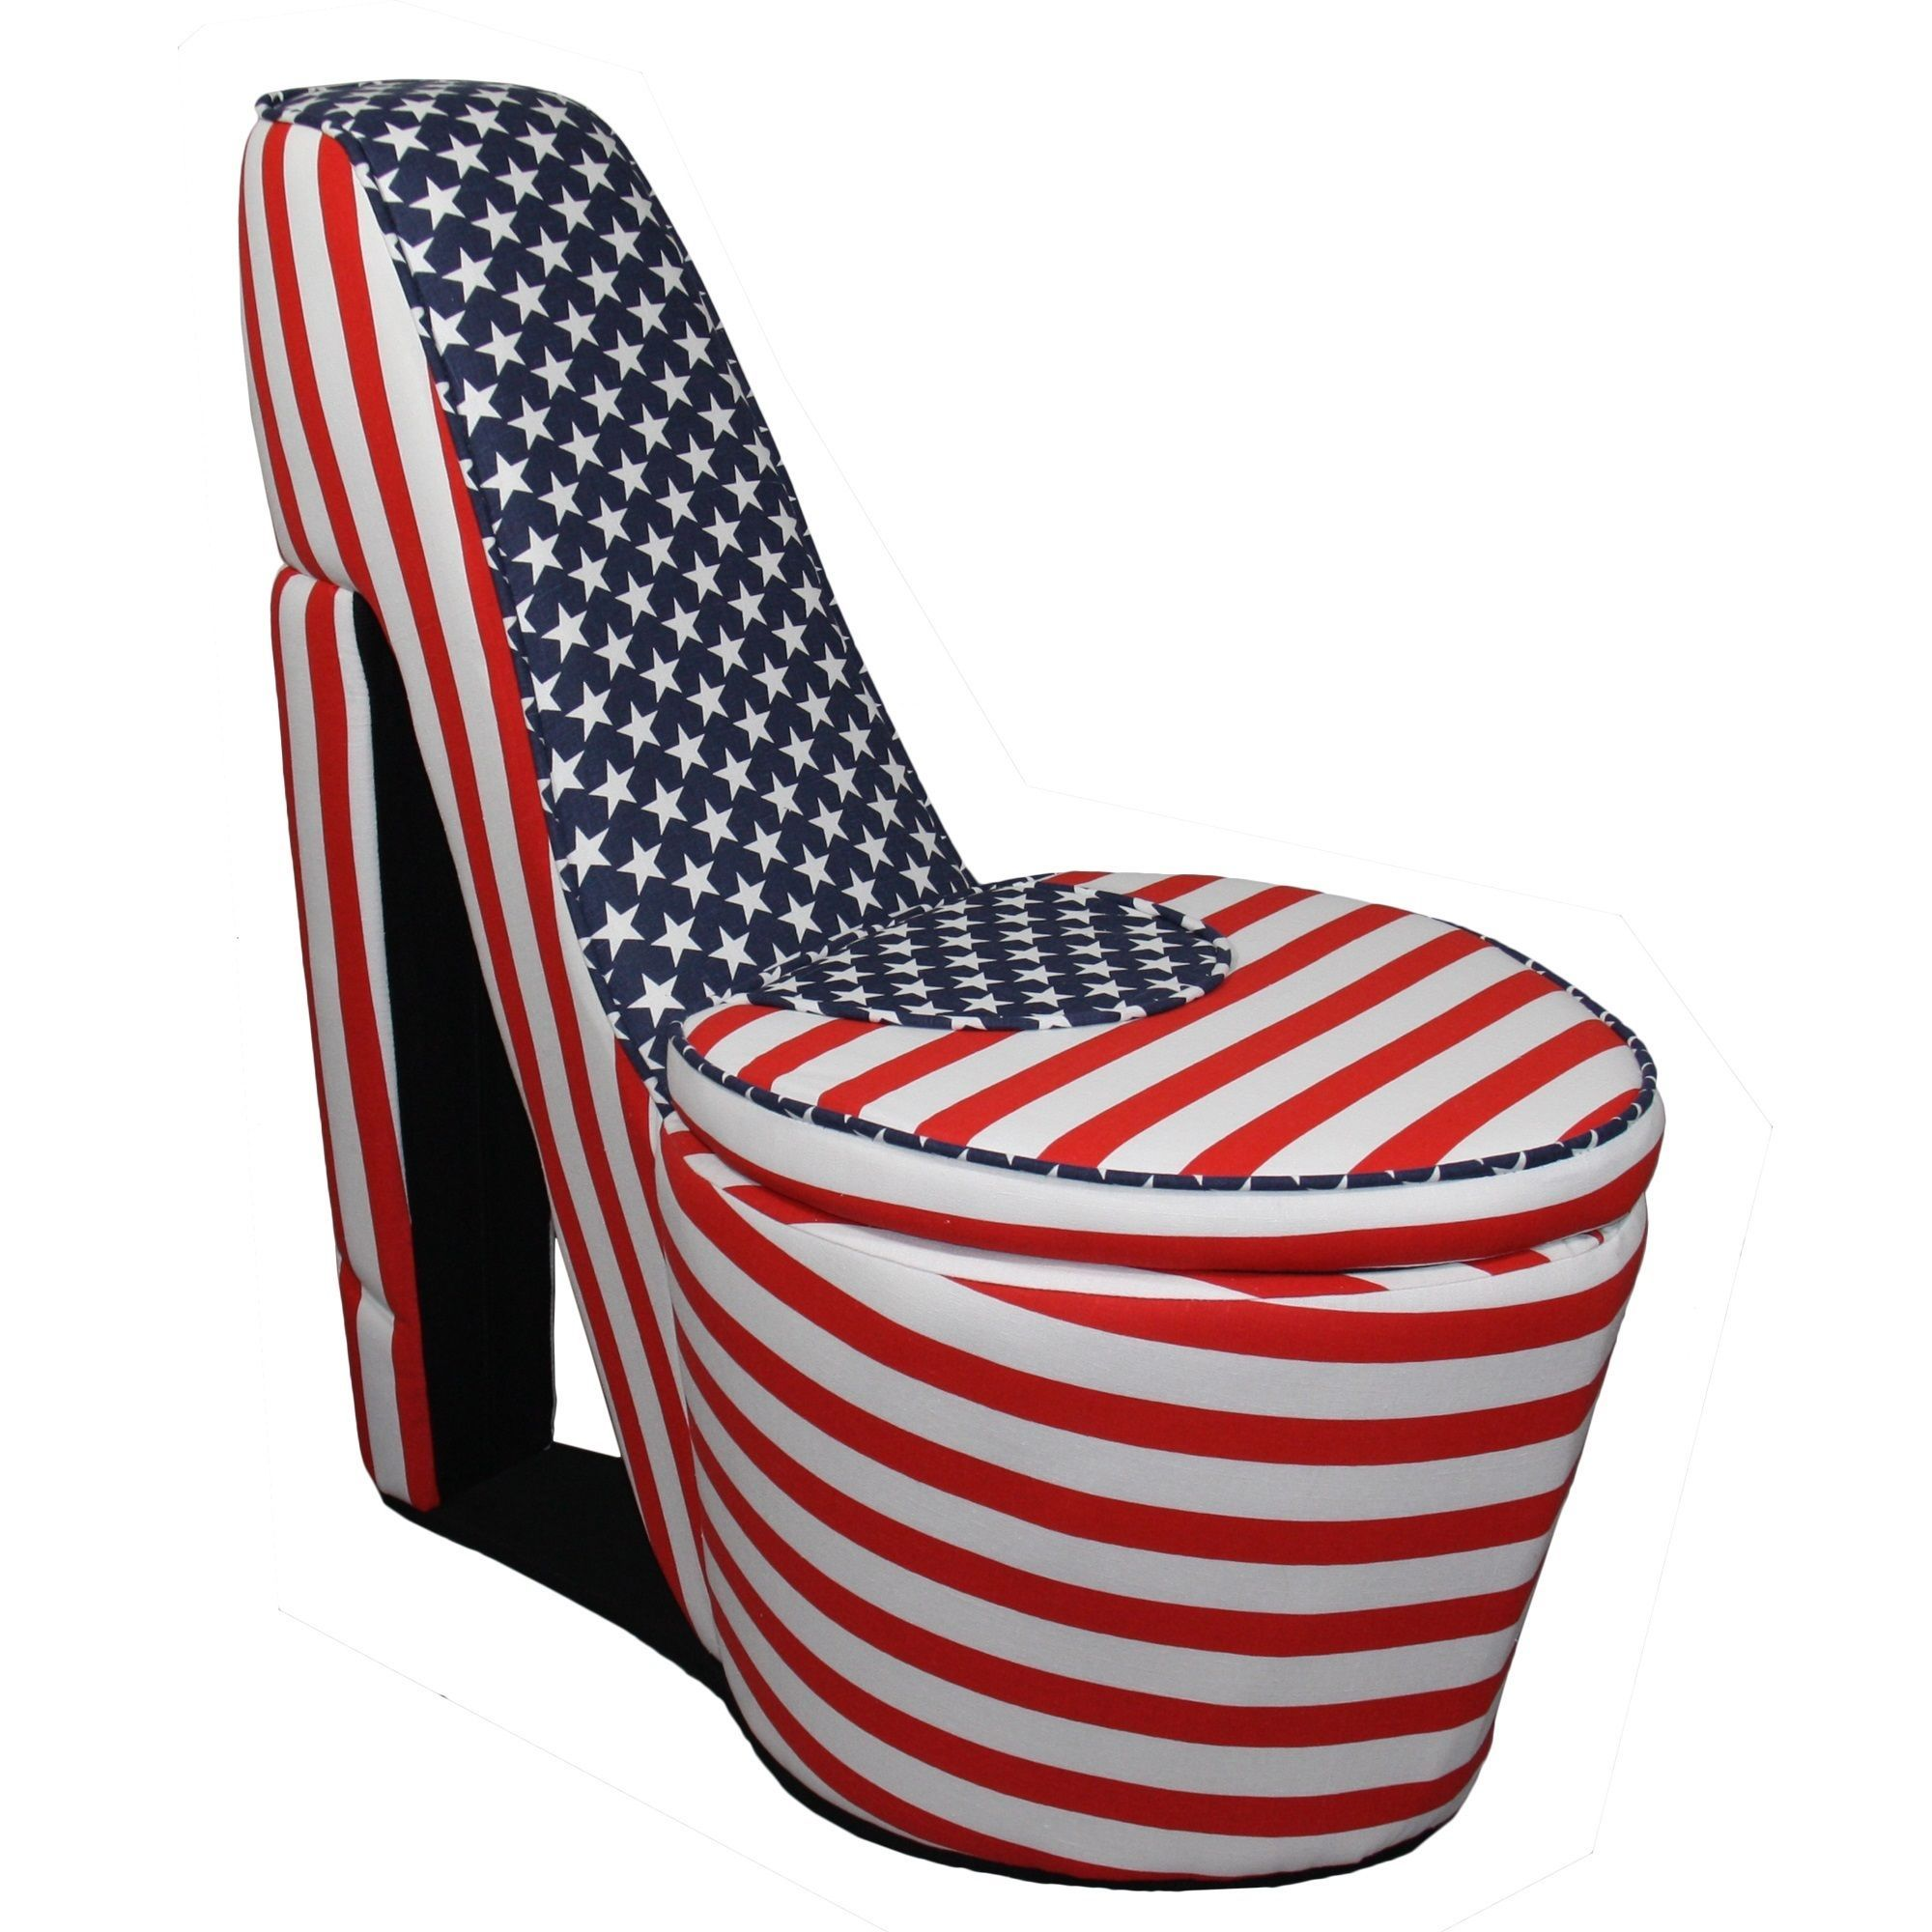 ORE International American Flag High Heels Storage Chair Red Heel